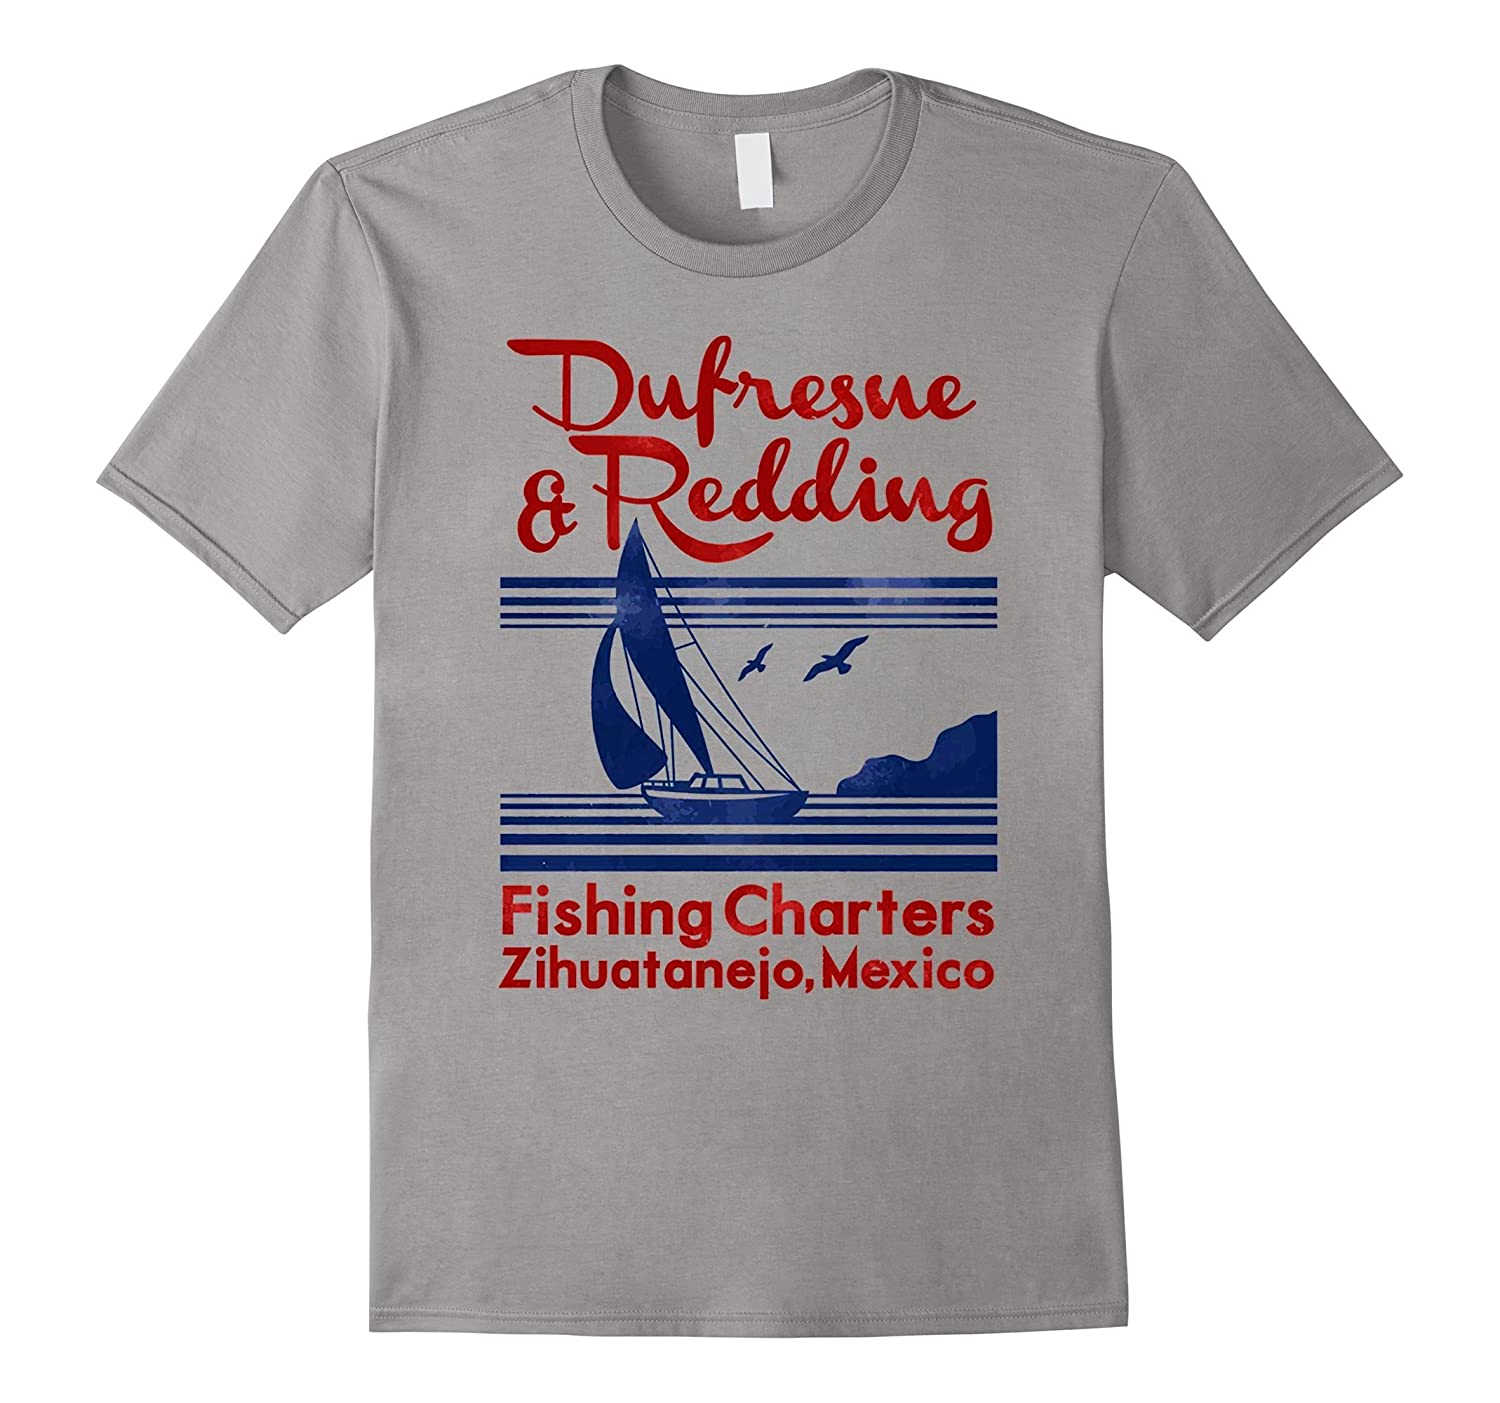 Dufresne and Redding Fishing Charters Shirt Hight Quality-CL